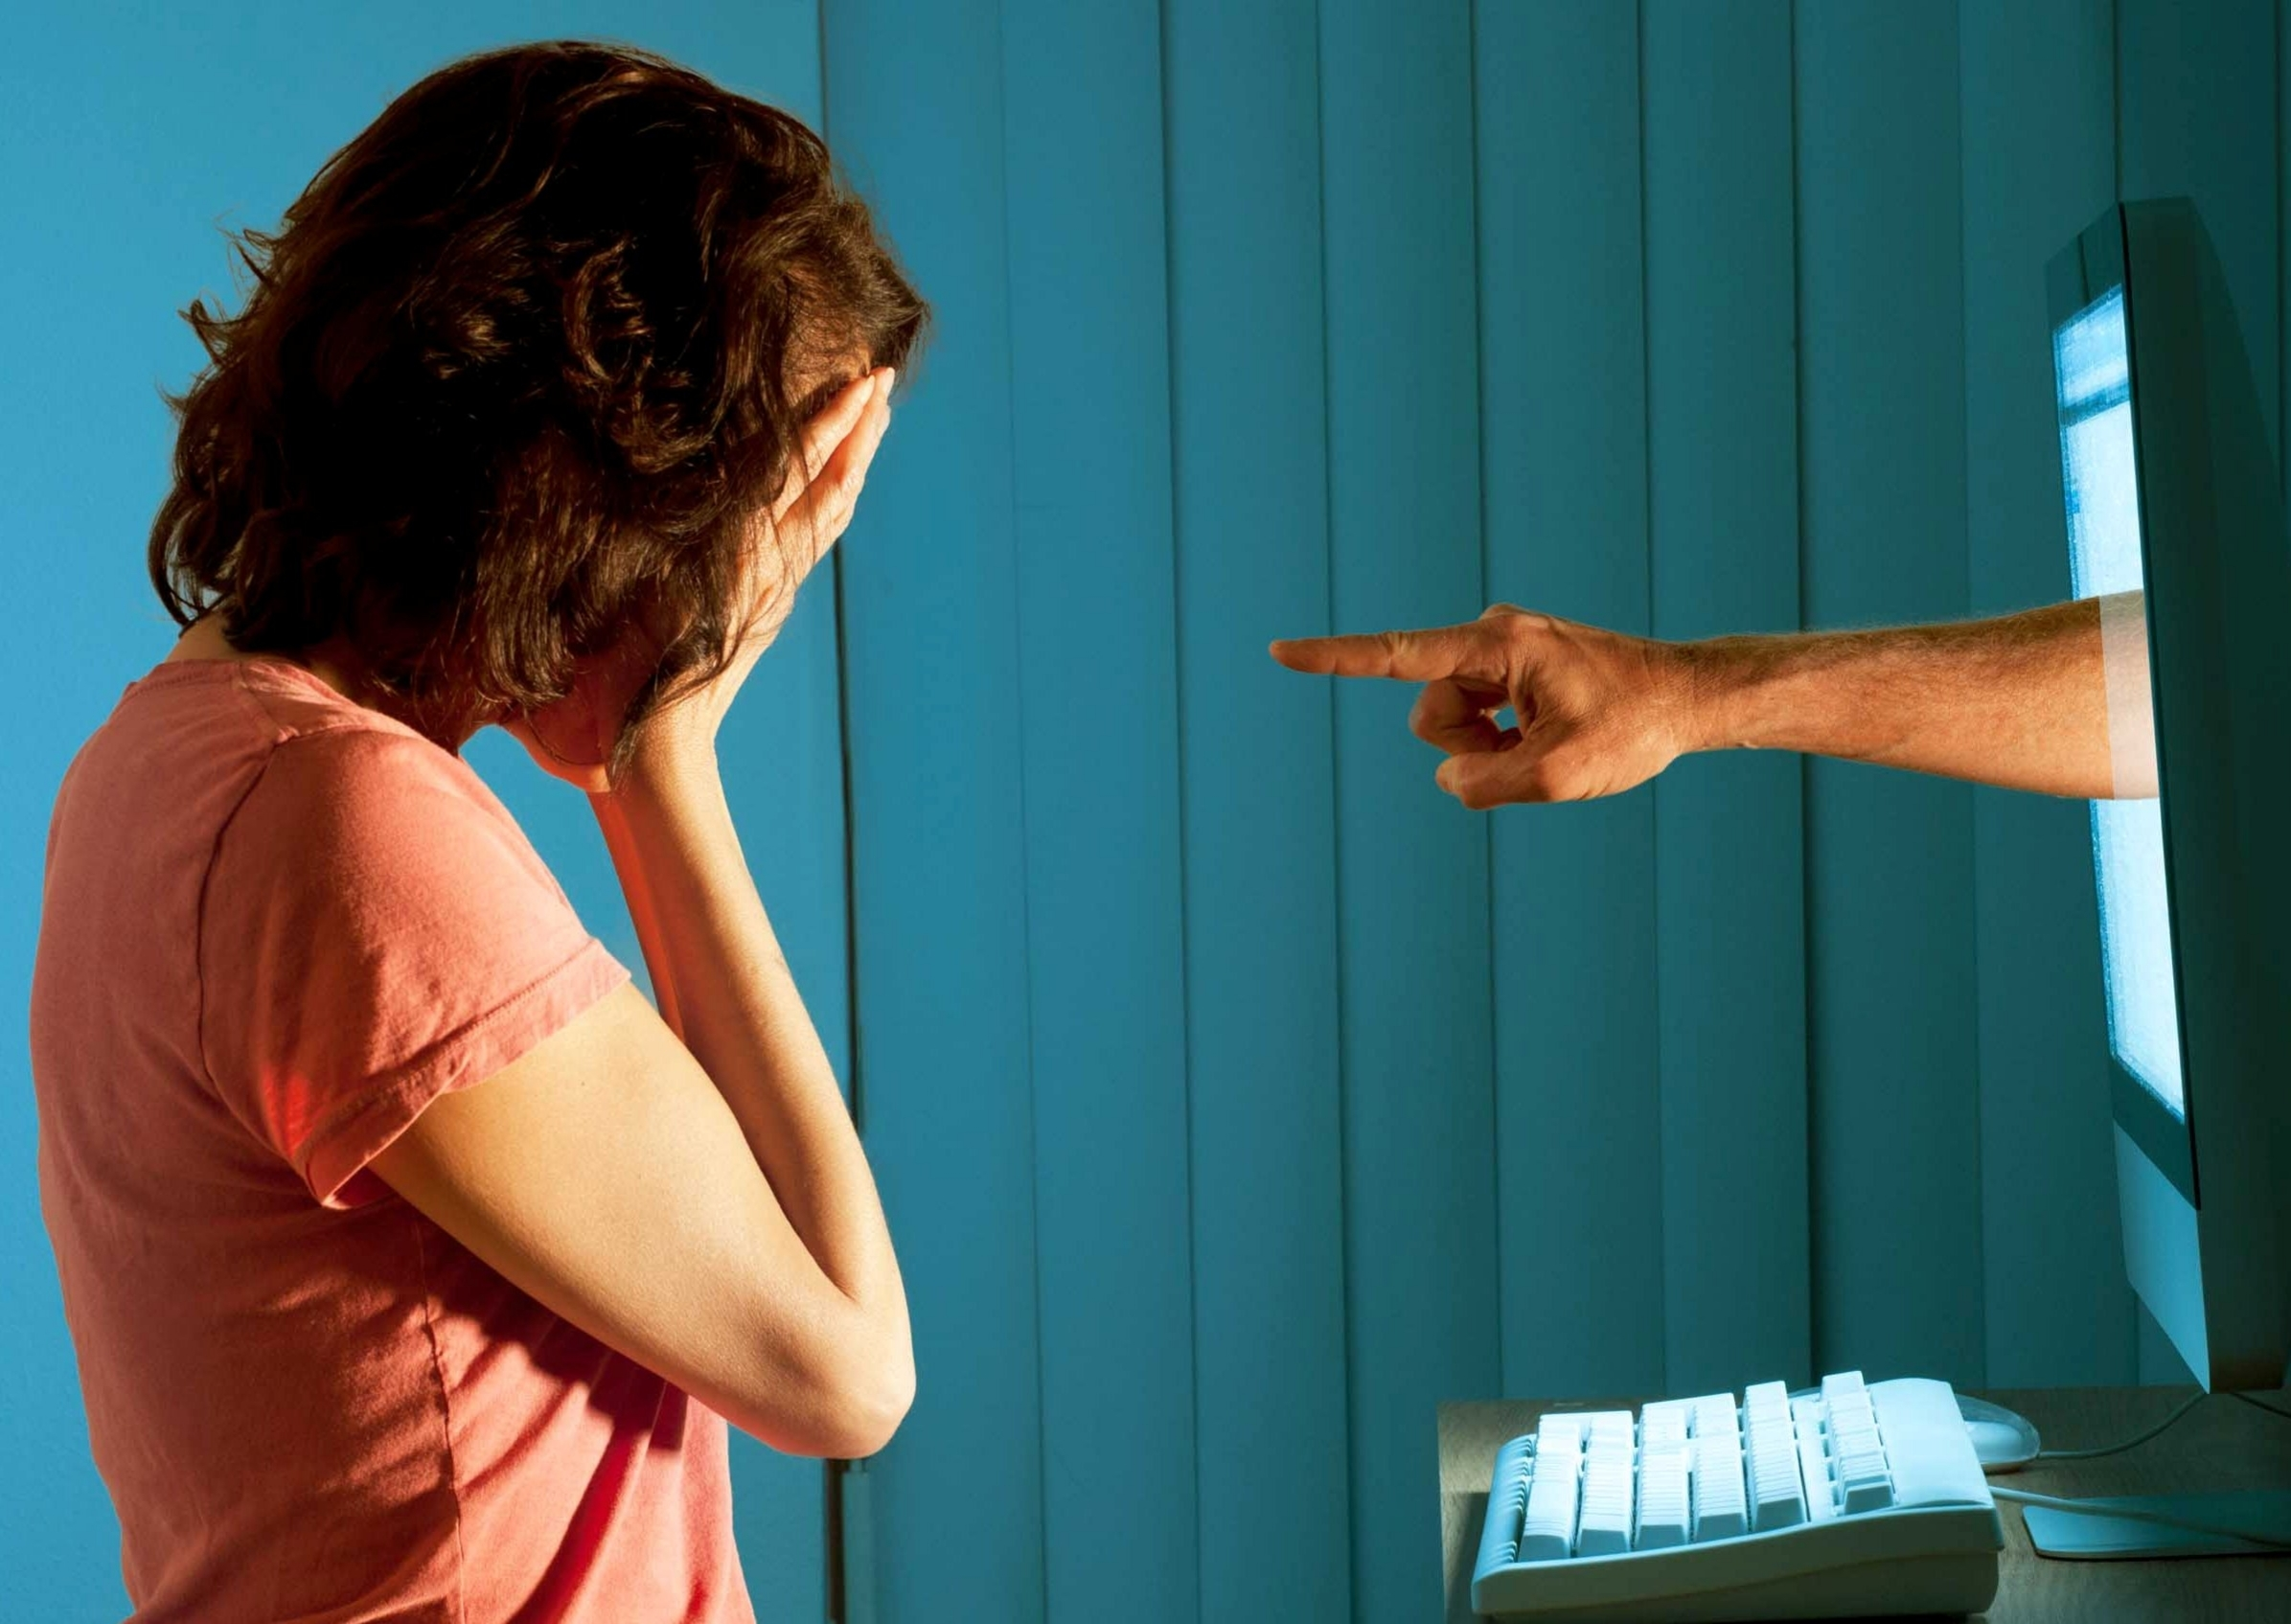 Cyberbullying: what is it and how to defend yourself